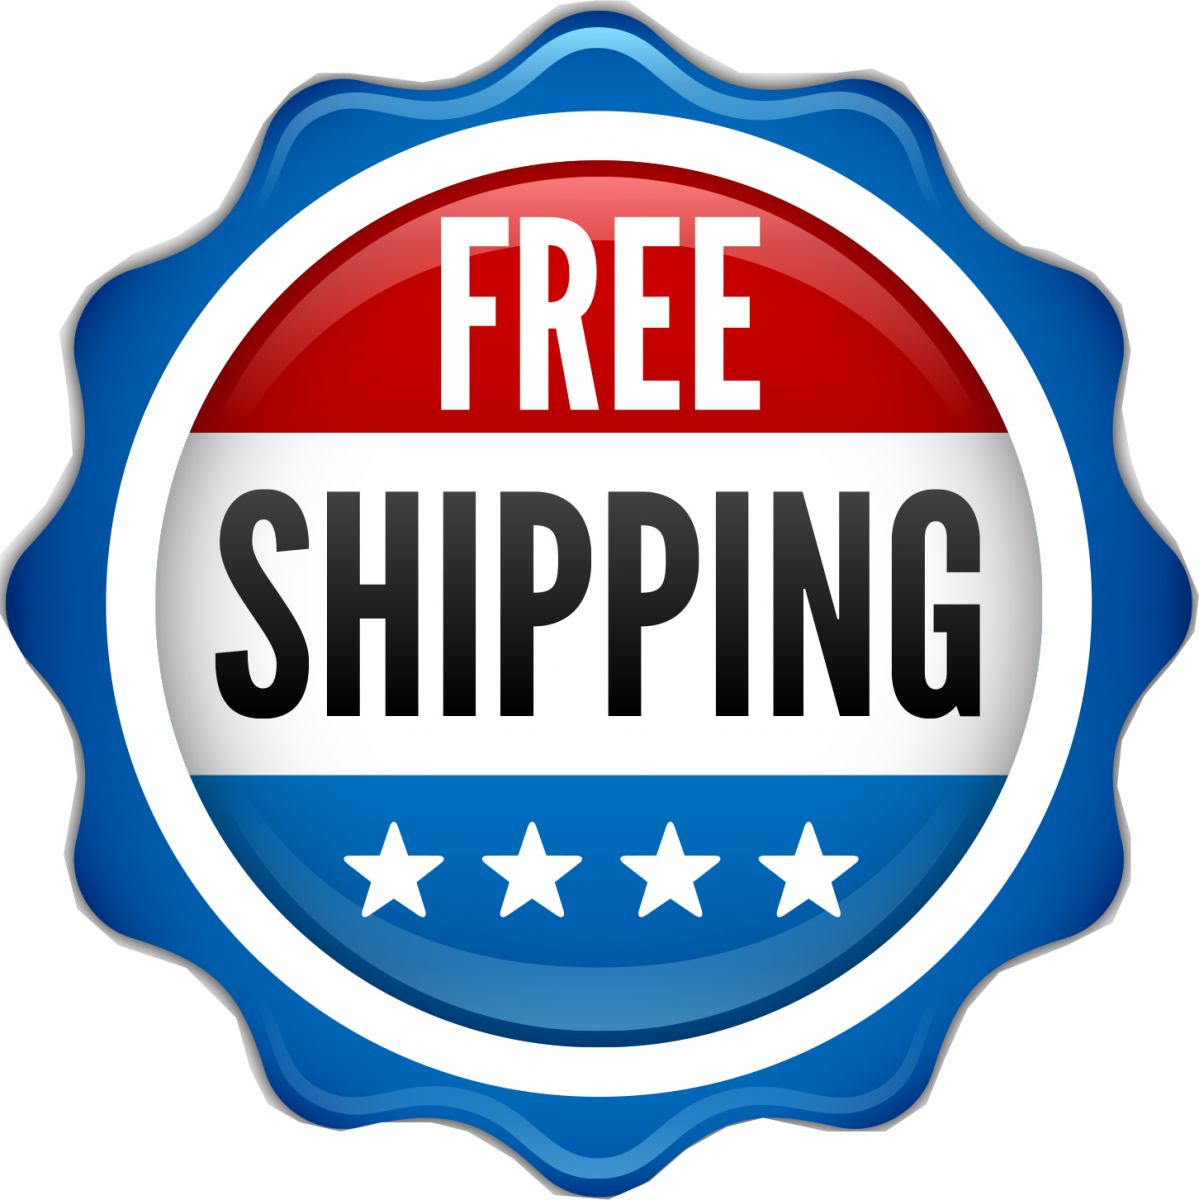 free_shipping_1543373460358.png